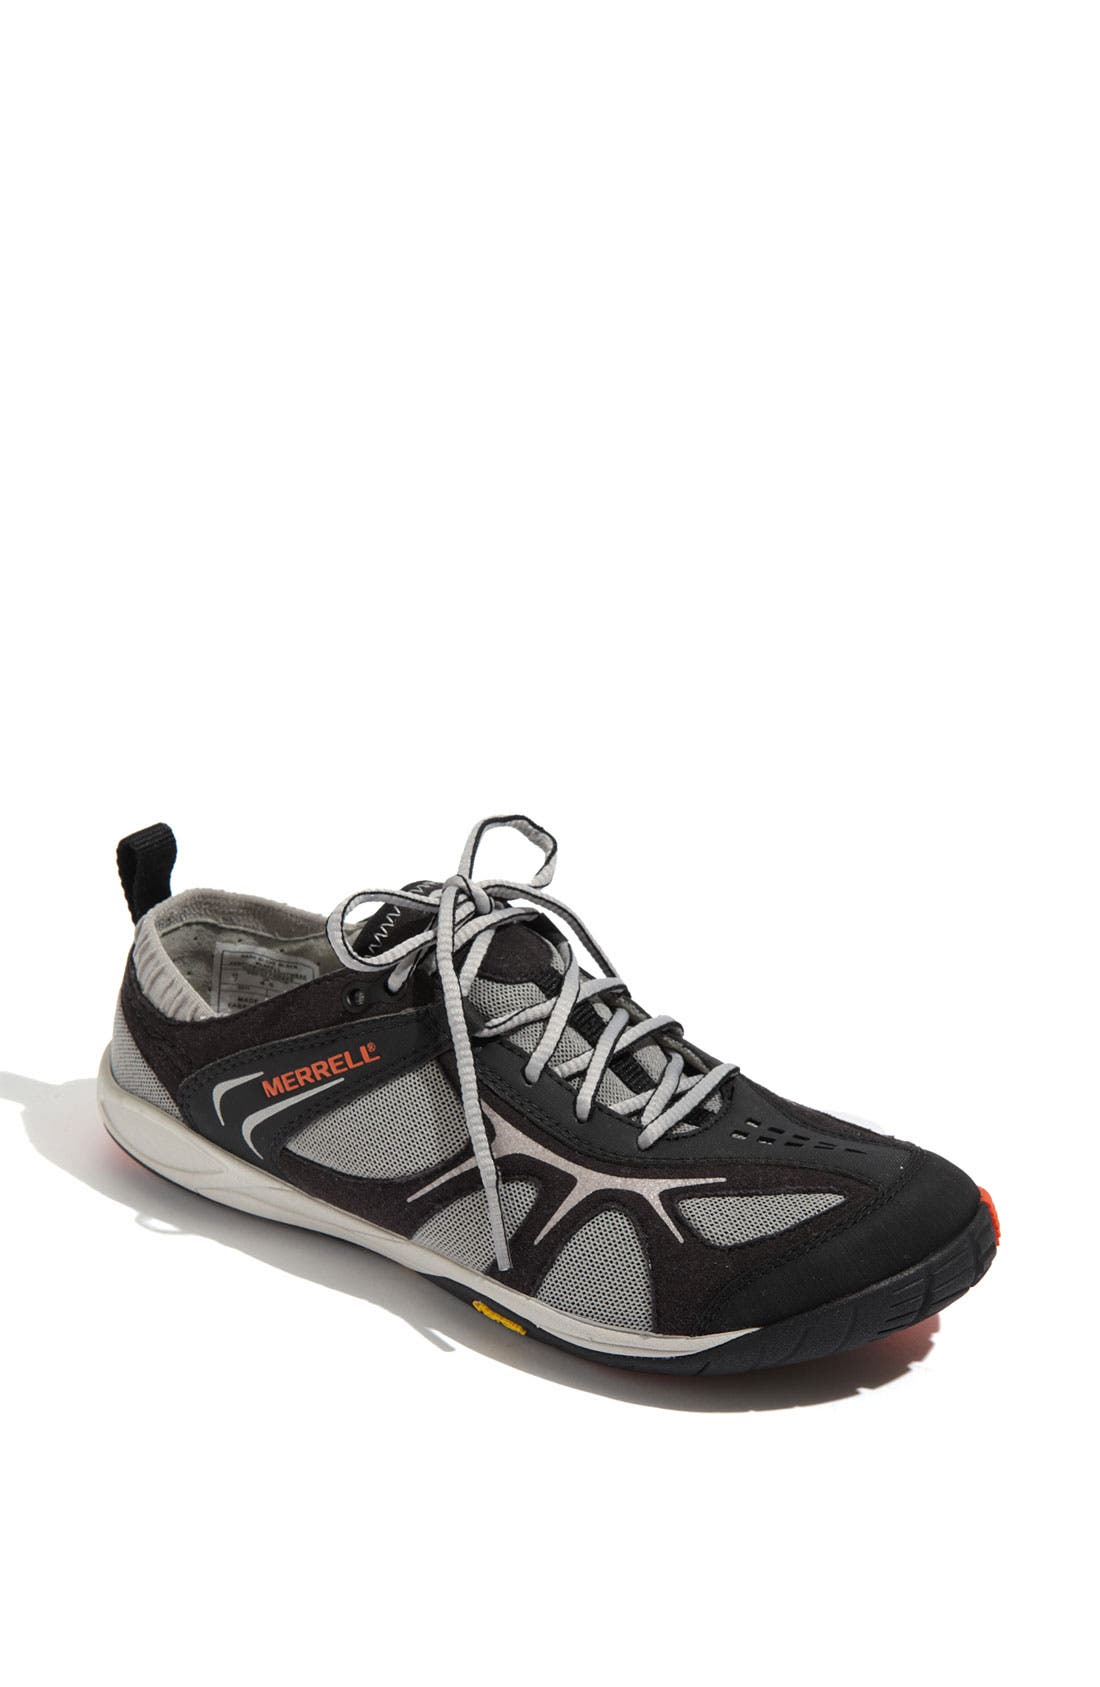 Alternate Image 1 Selected - Merrell 'Dash Glove' Running Shoe (Women)